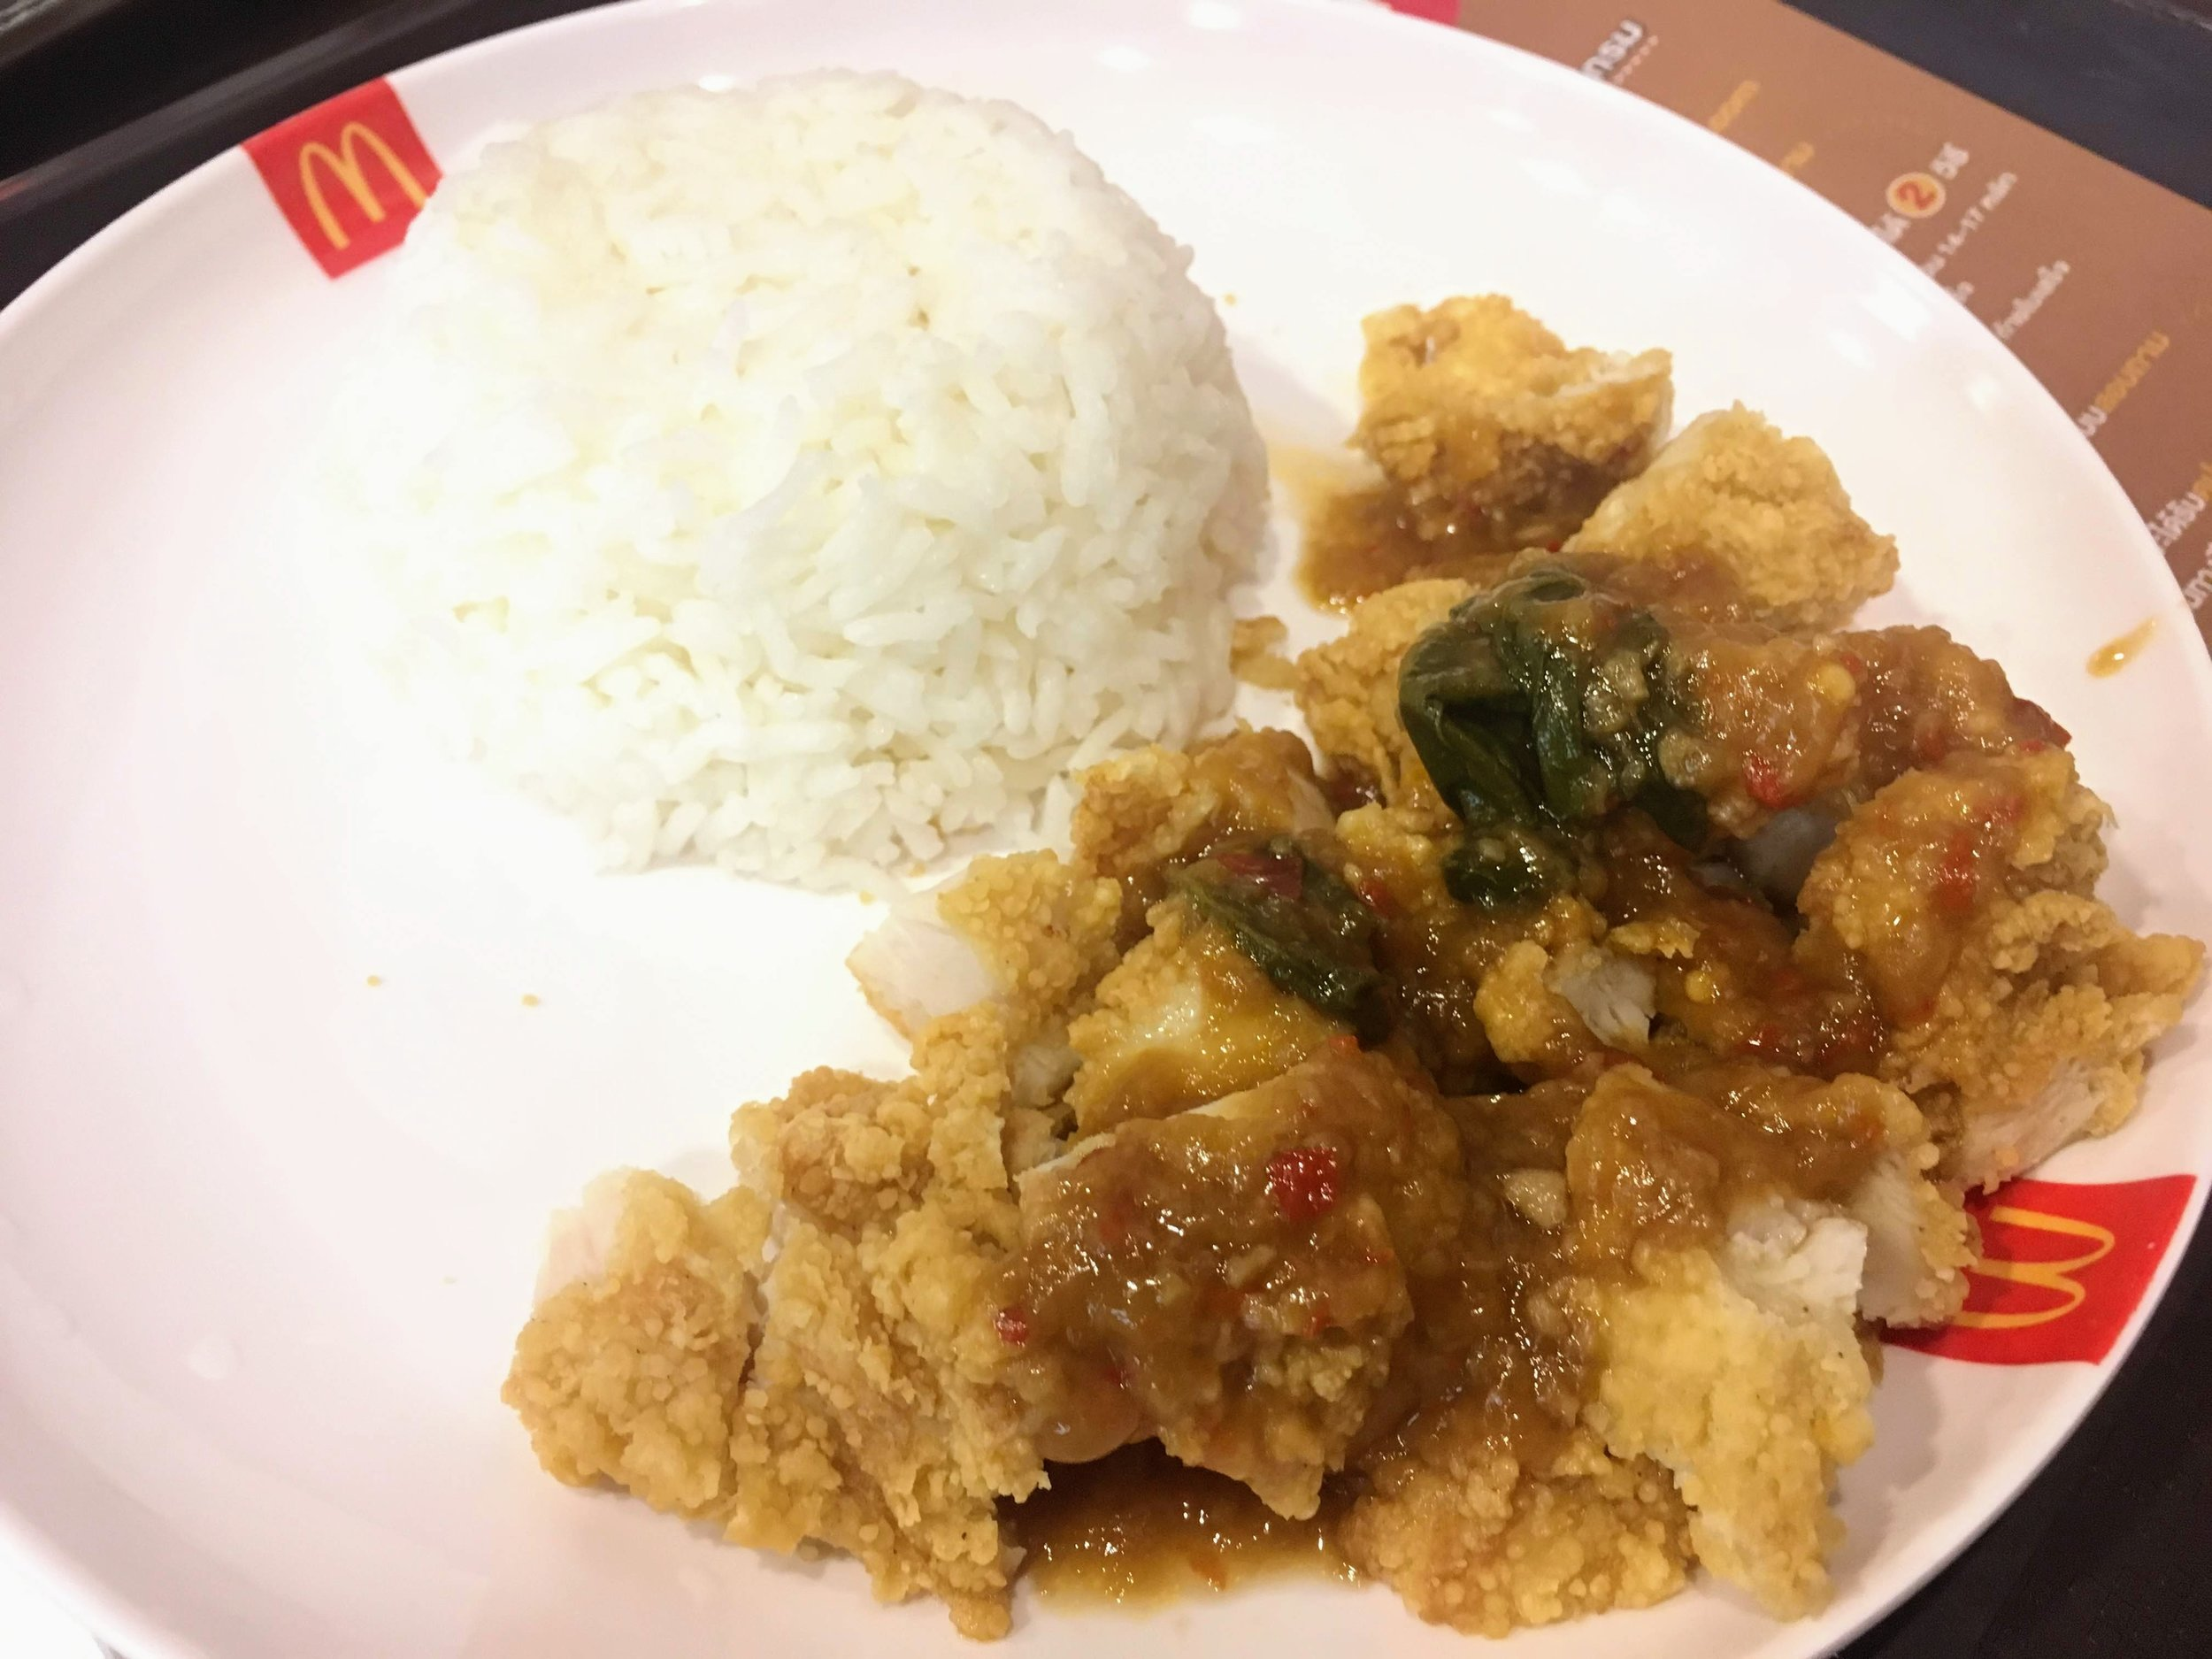 McDonald's basil chicken in Bangkok, Thailand